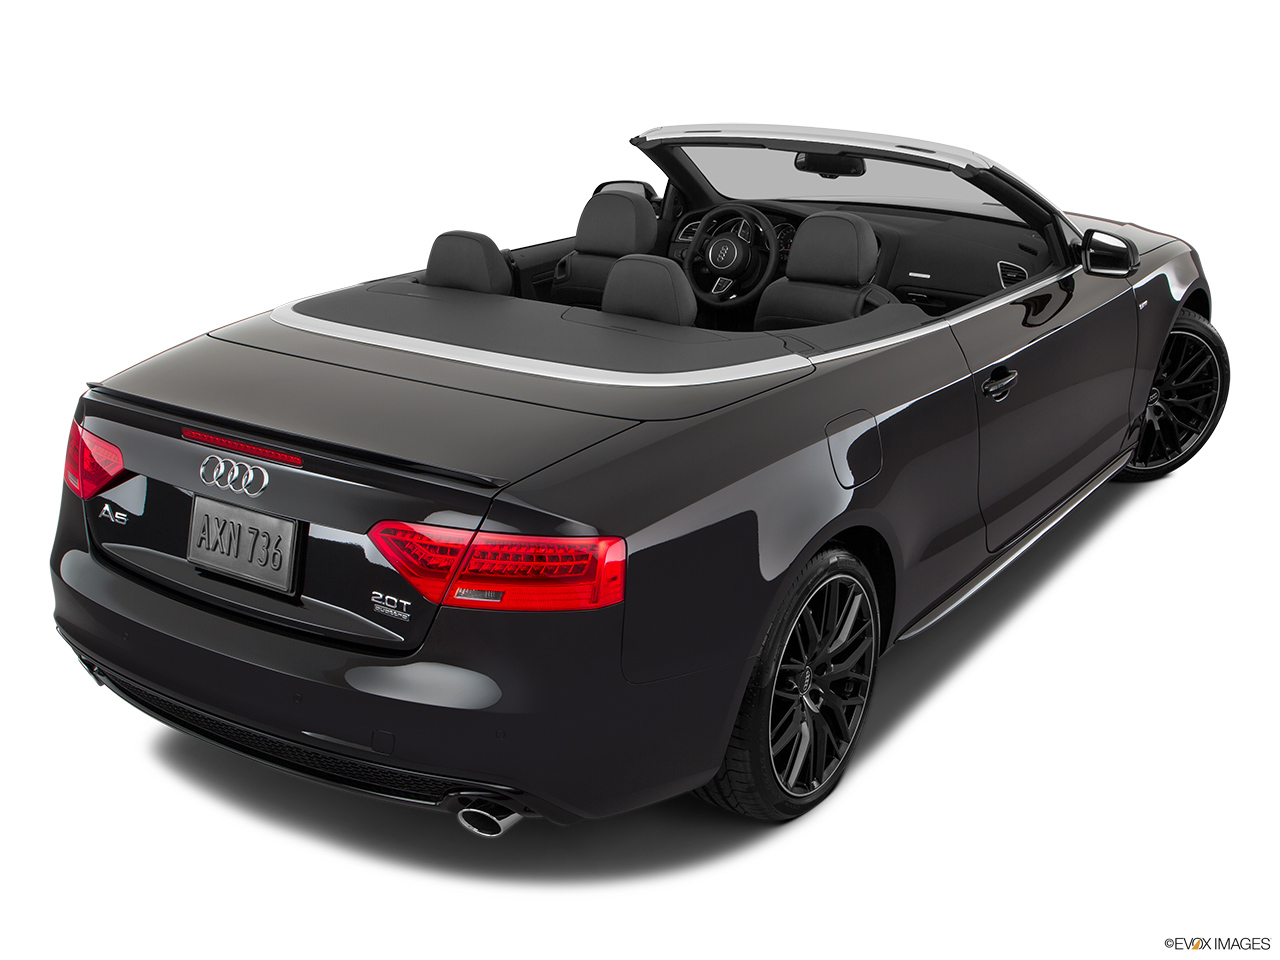 2017 Audi A5 Sport Cabriolet 2.0 TFSI Rear 3/4 angle view.